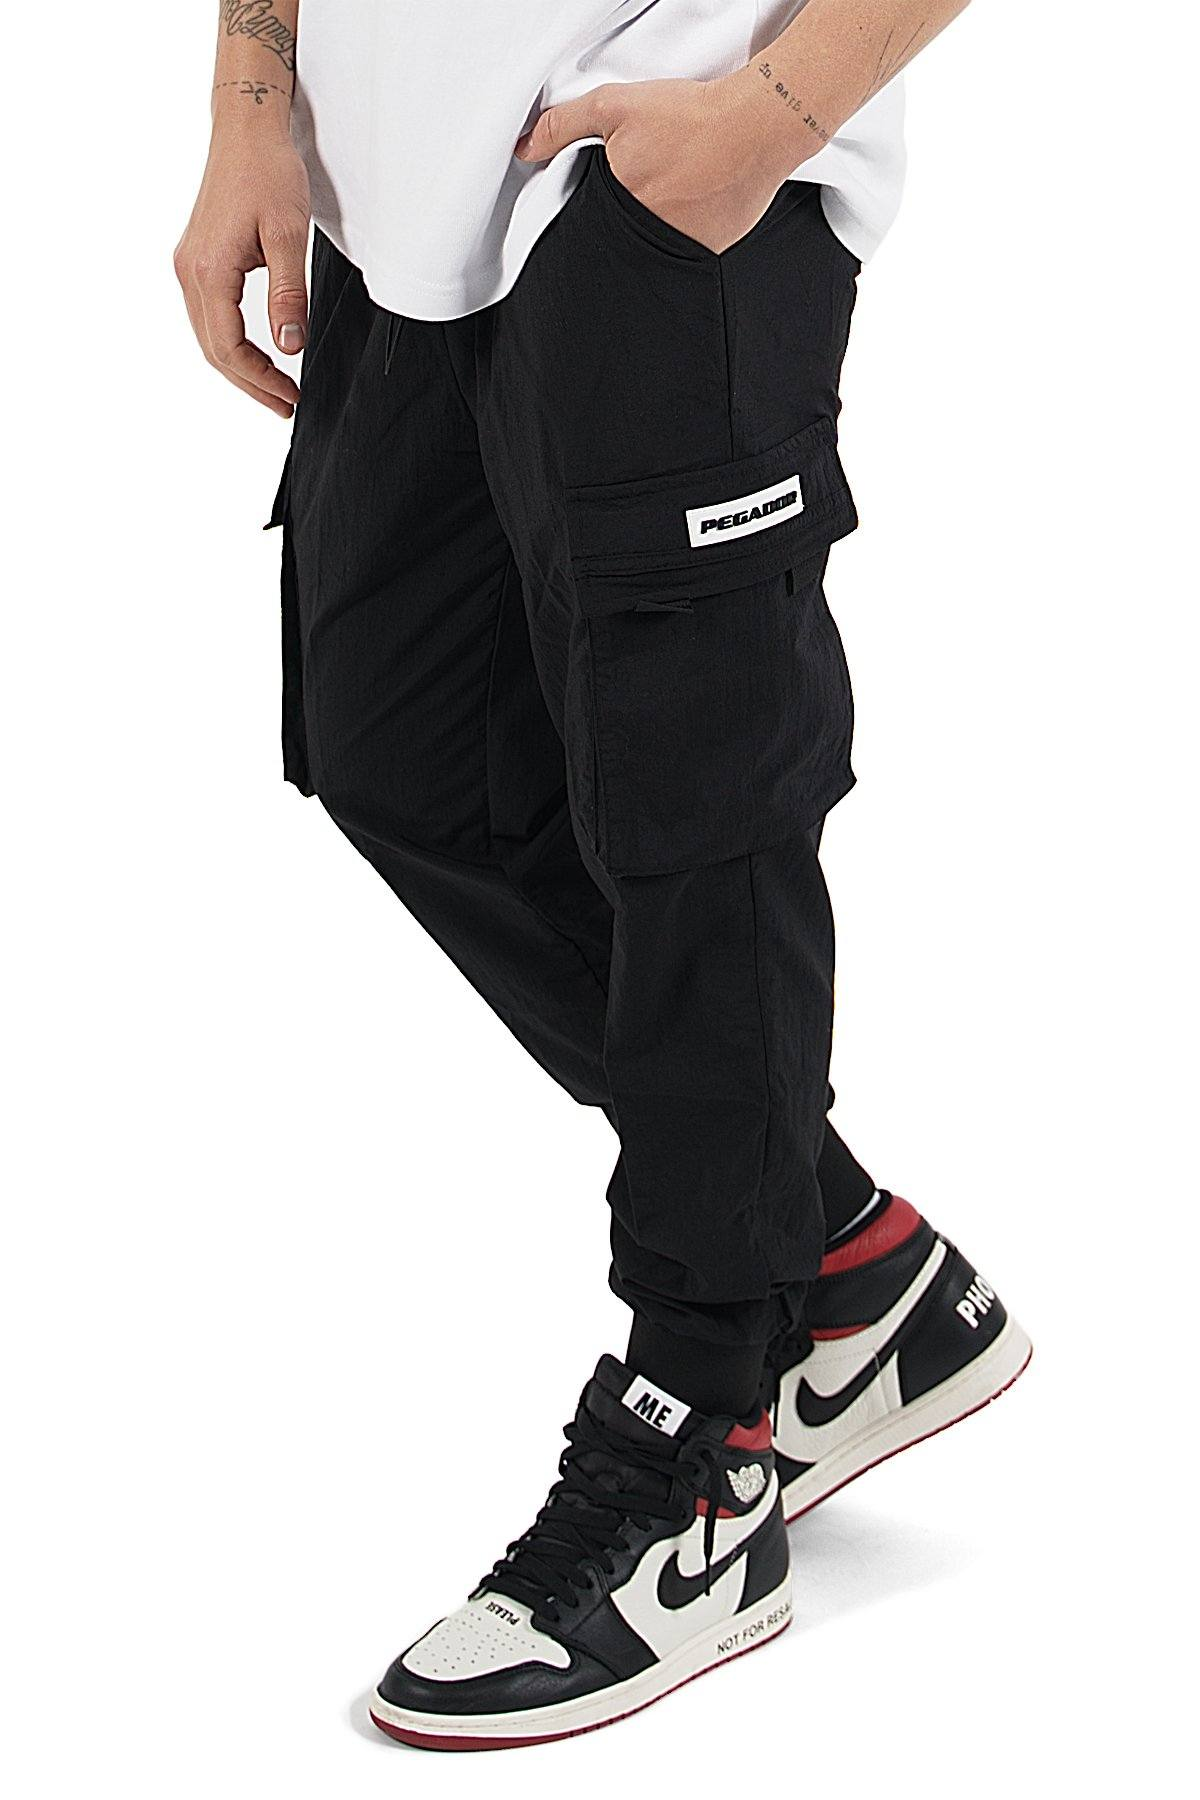 Reno Woven Cargo Pants Black - PEGADOR - Dominate the Hype